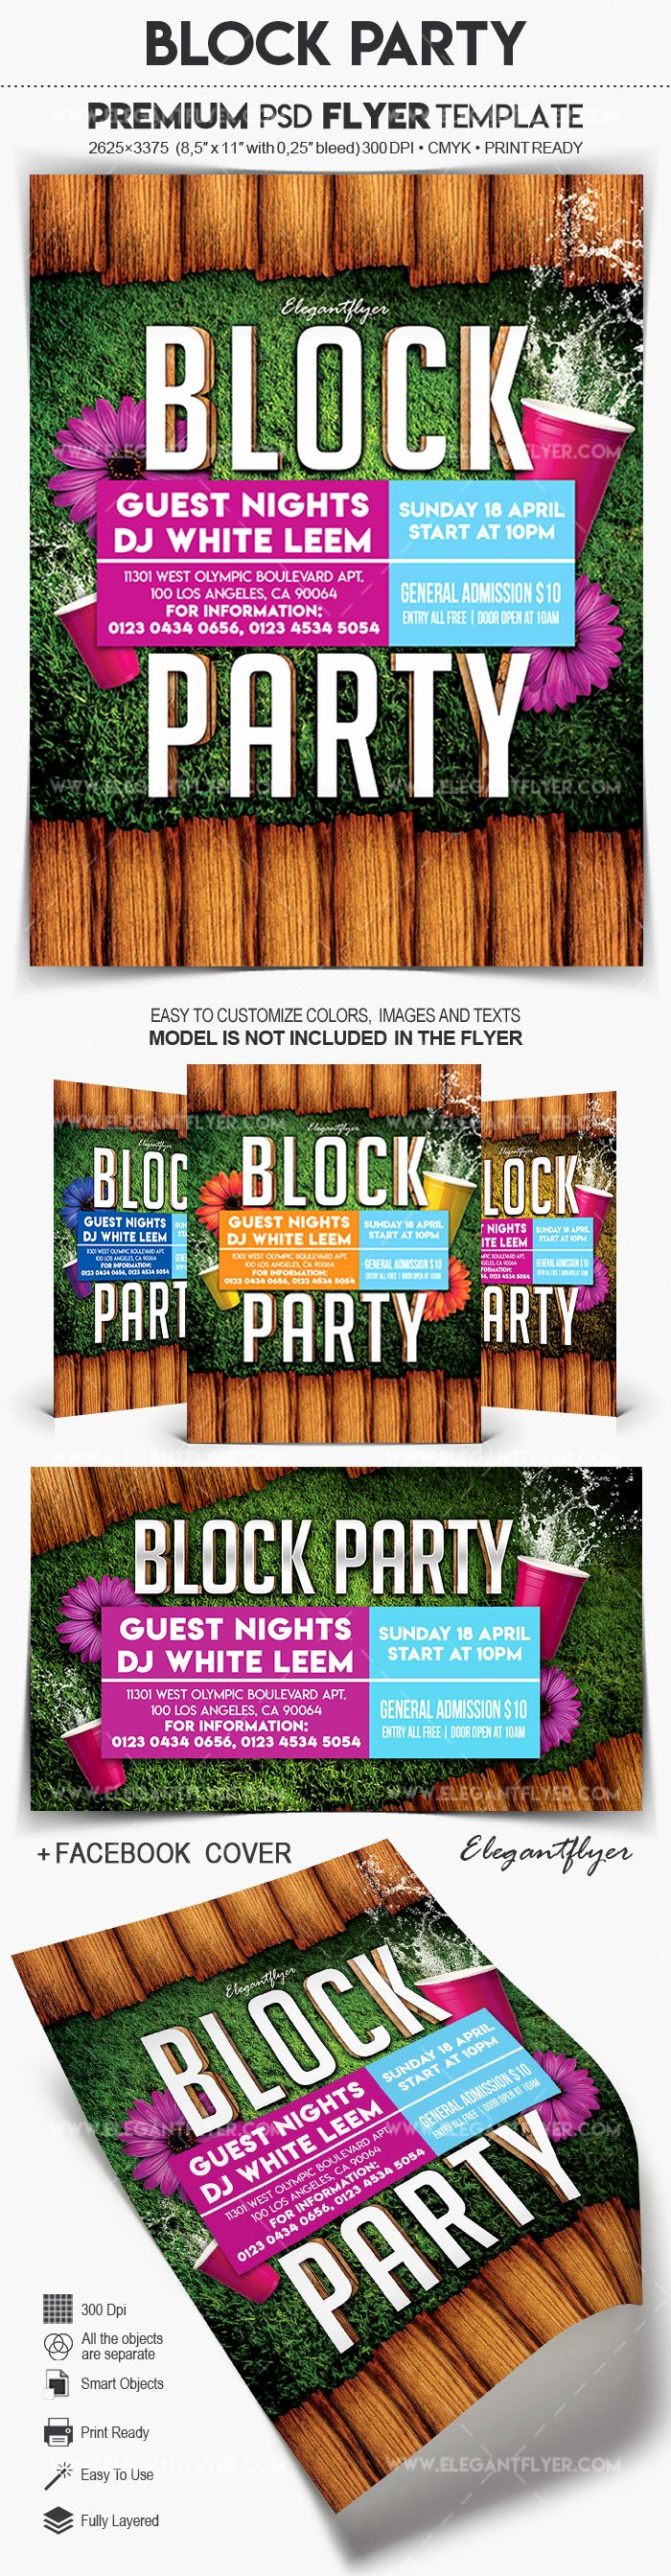 Block Party Flyer Templates Free Elegant Block Party – Flyer Psd Template – by Elegantflyer